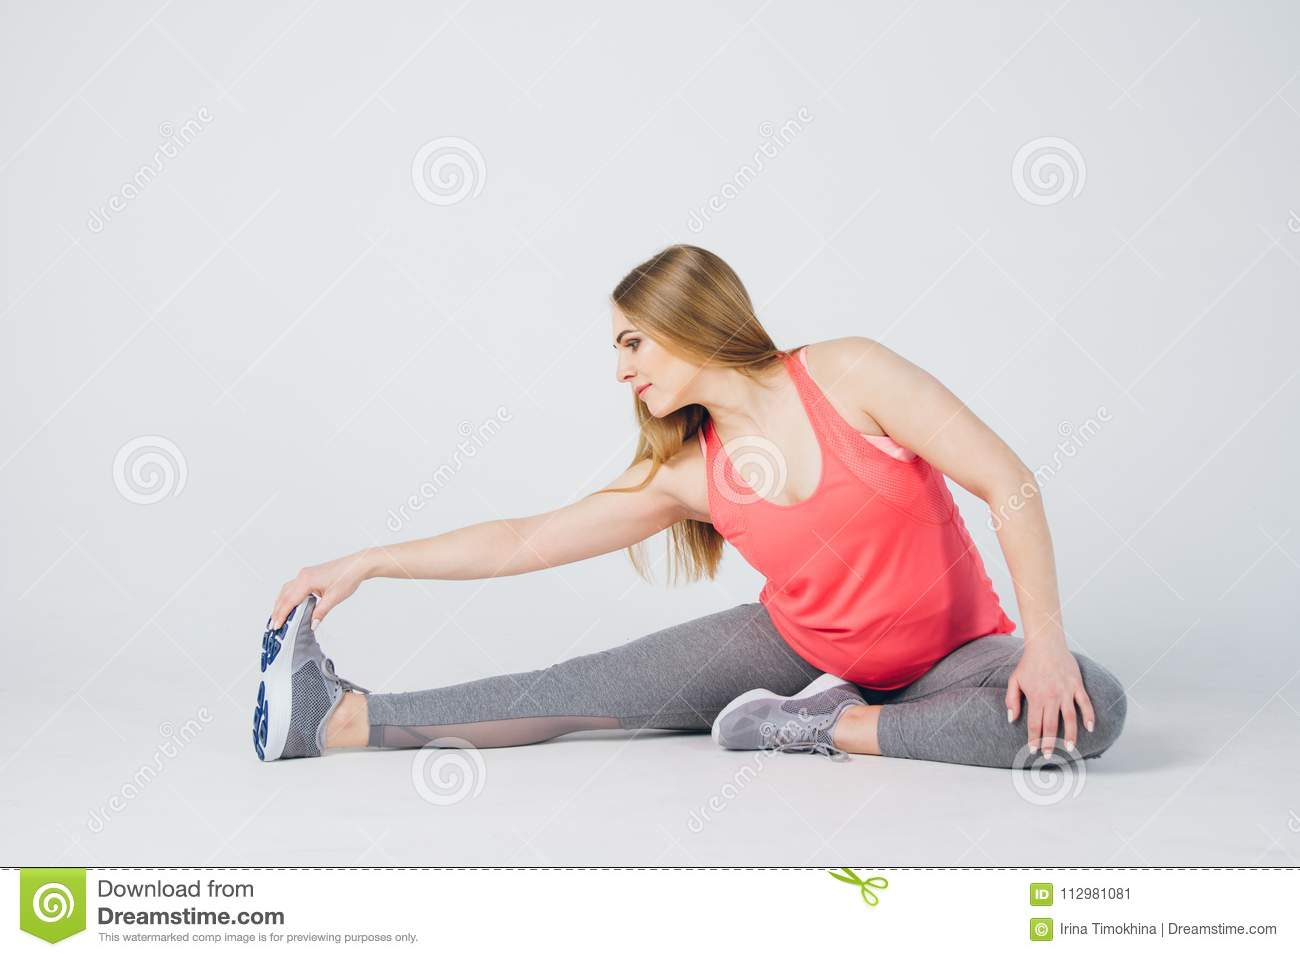 Pregnant girl in sportswear is engaged in fitness